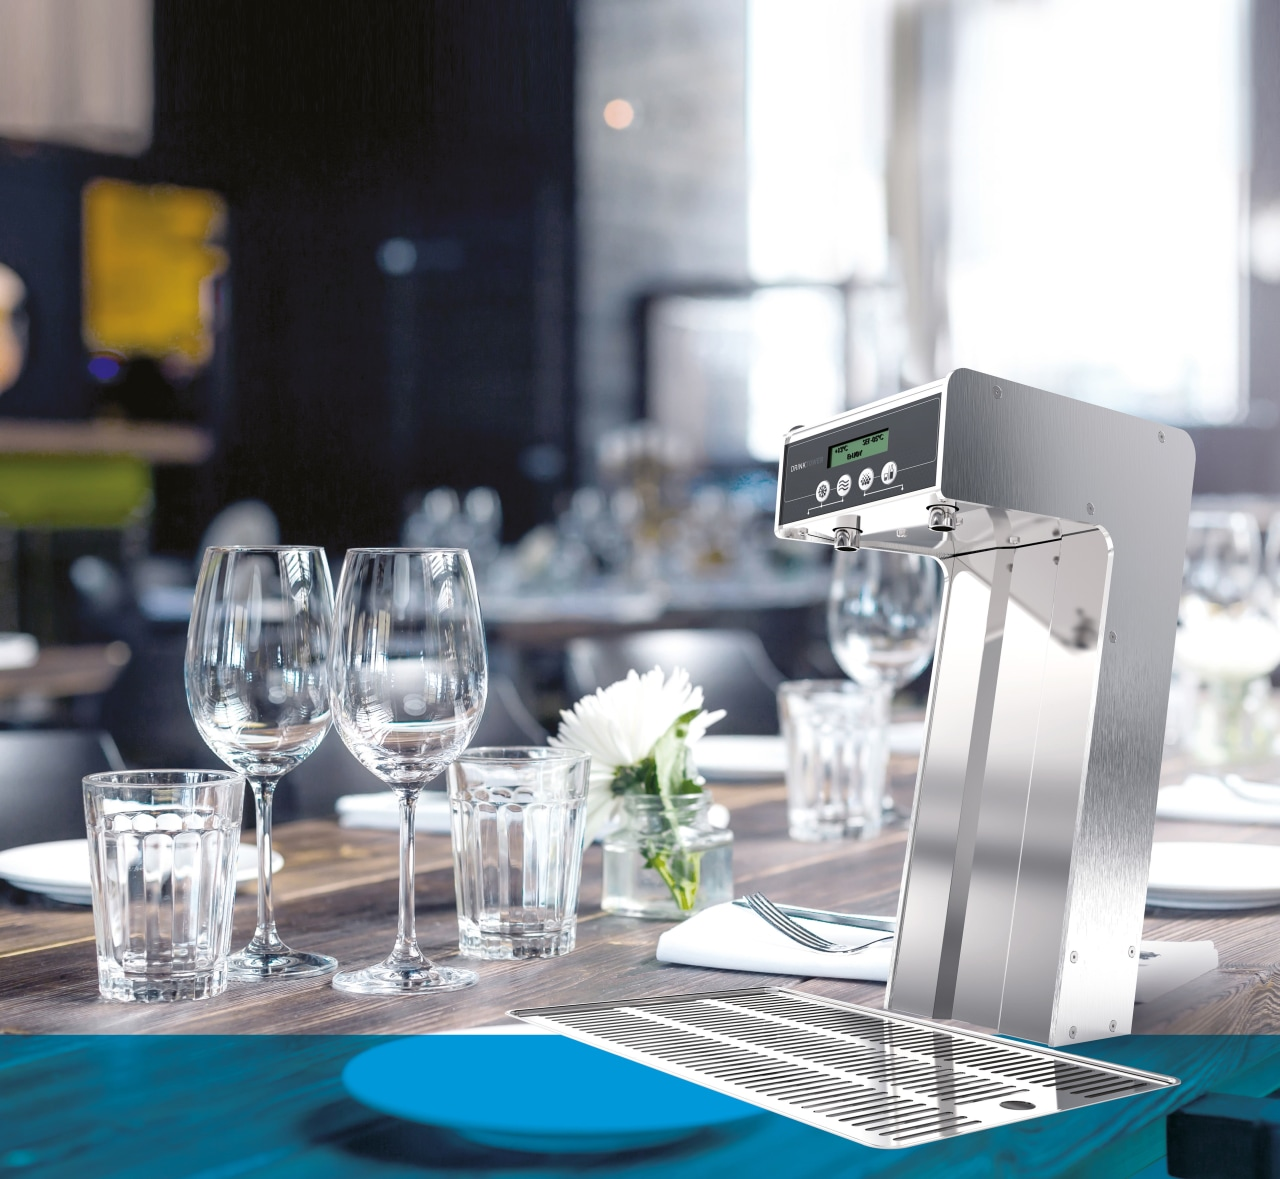 Merquip supplies an extensive range of Cosmetal filtered glass, product, product design, restaurant, table, tableware, gray, white